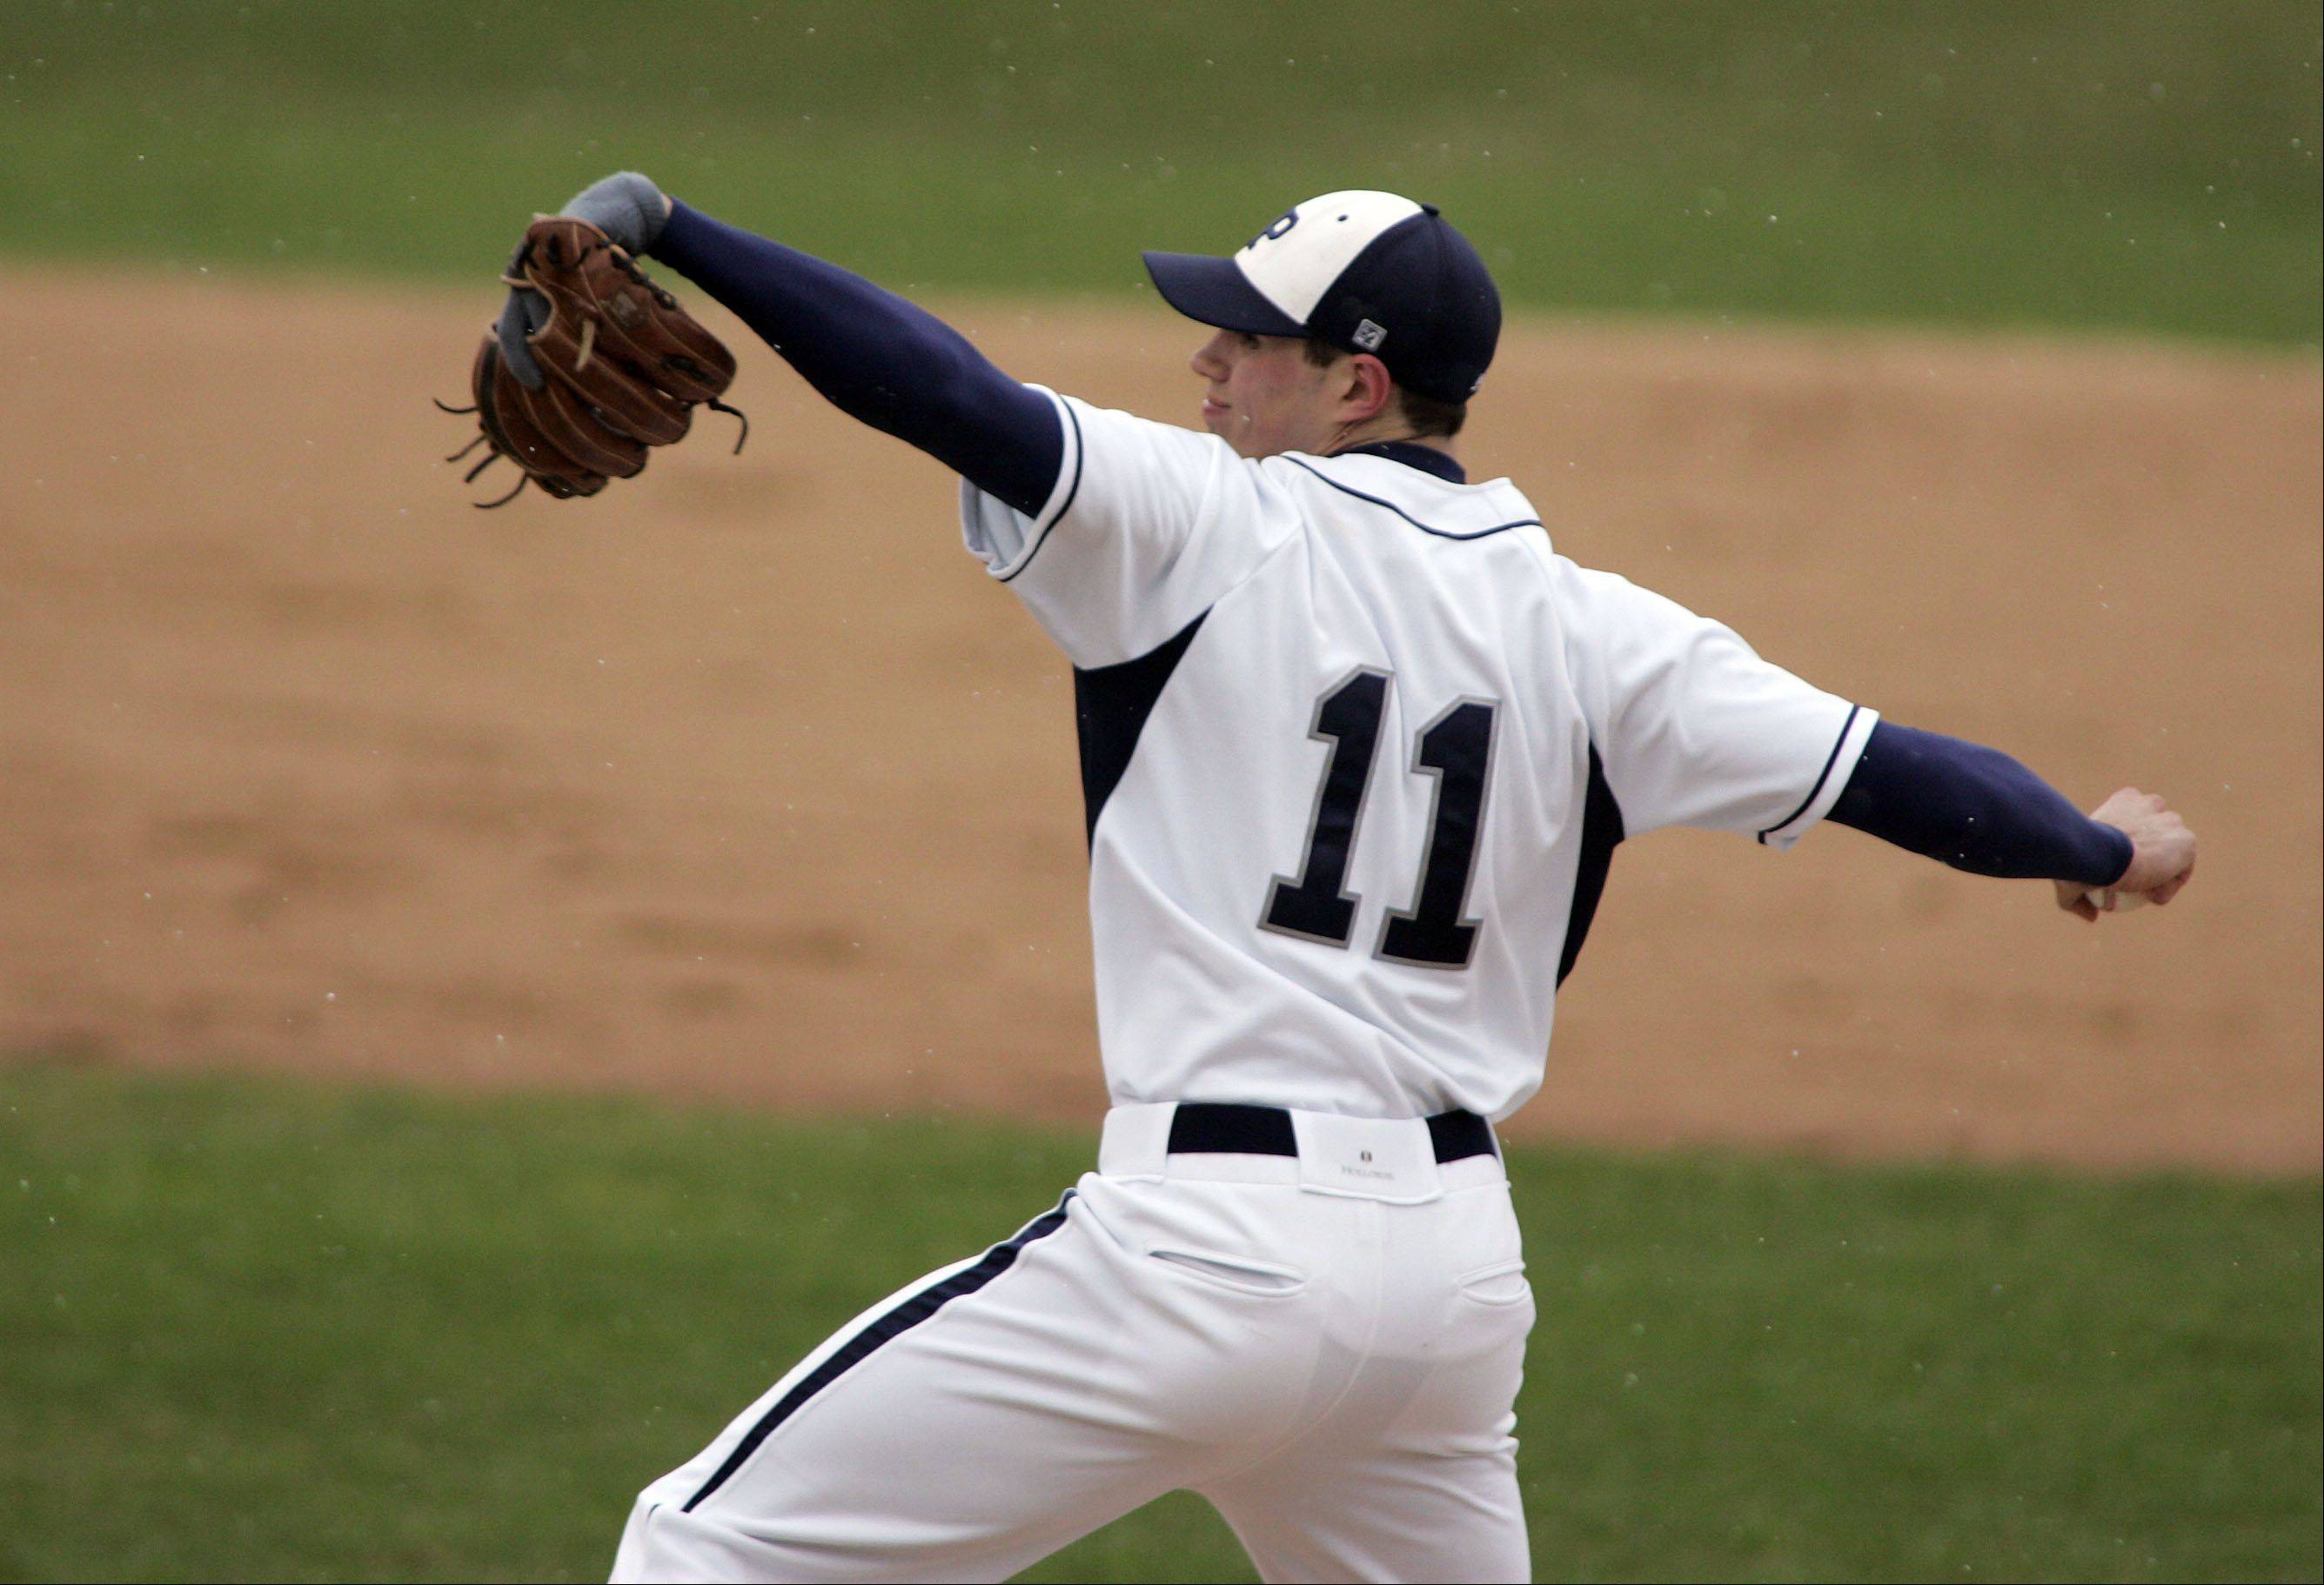 Lake Park�s Eric Vatch delivers to the plate against Larkin Friday at Boomers Stadium in Schaumburg.